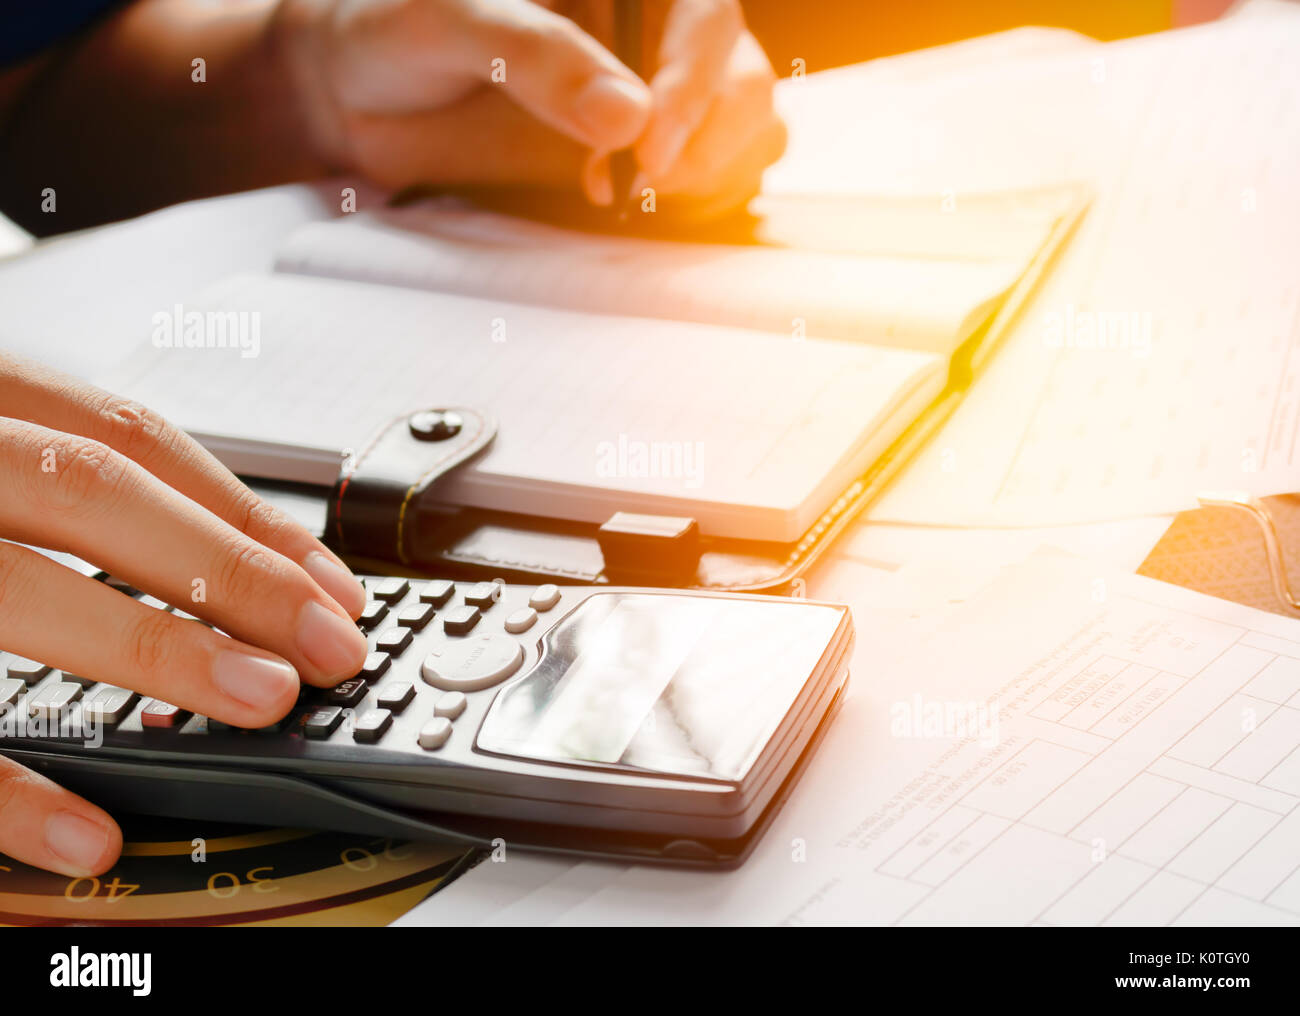 close up, business man or lawyer accountant working on accounts using a calculator and writing on documents, soft focus - Stock Image